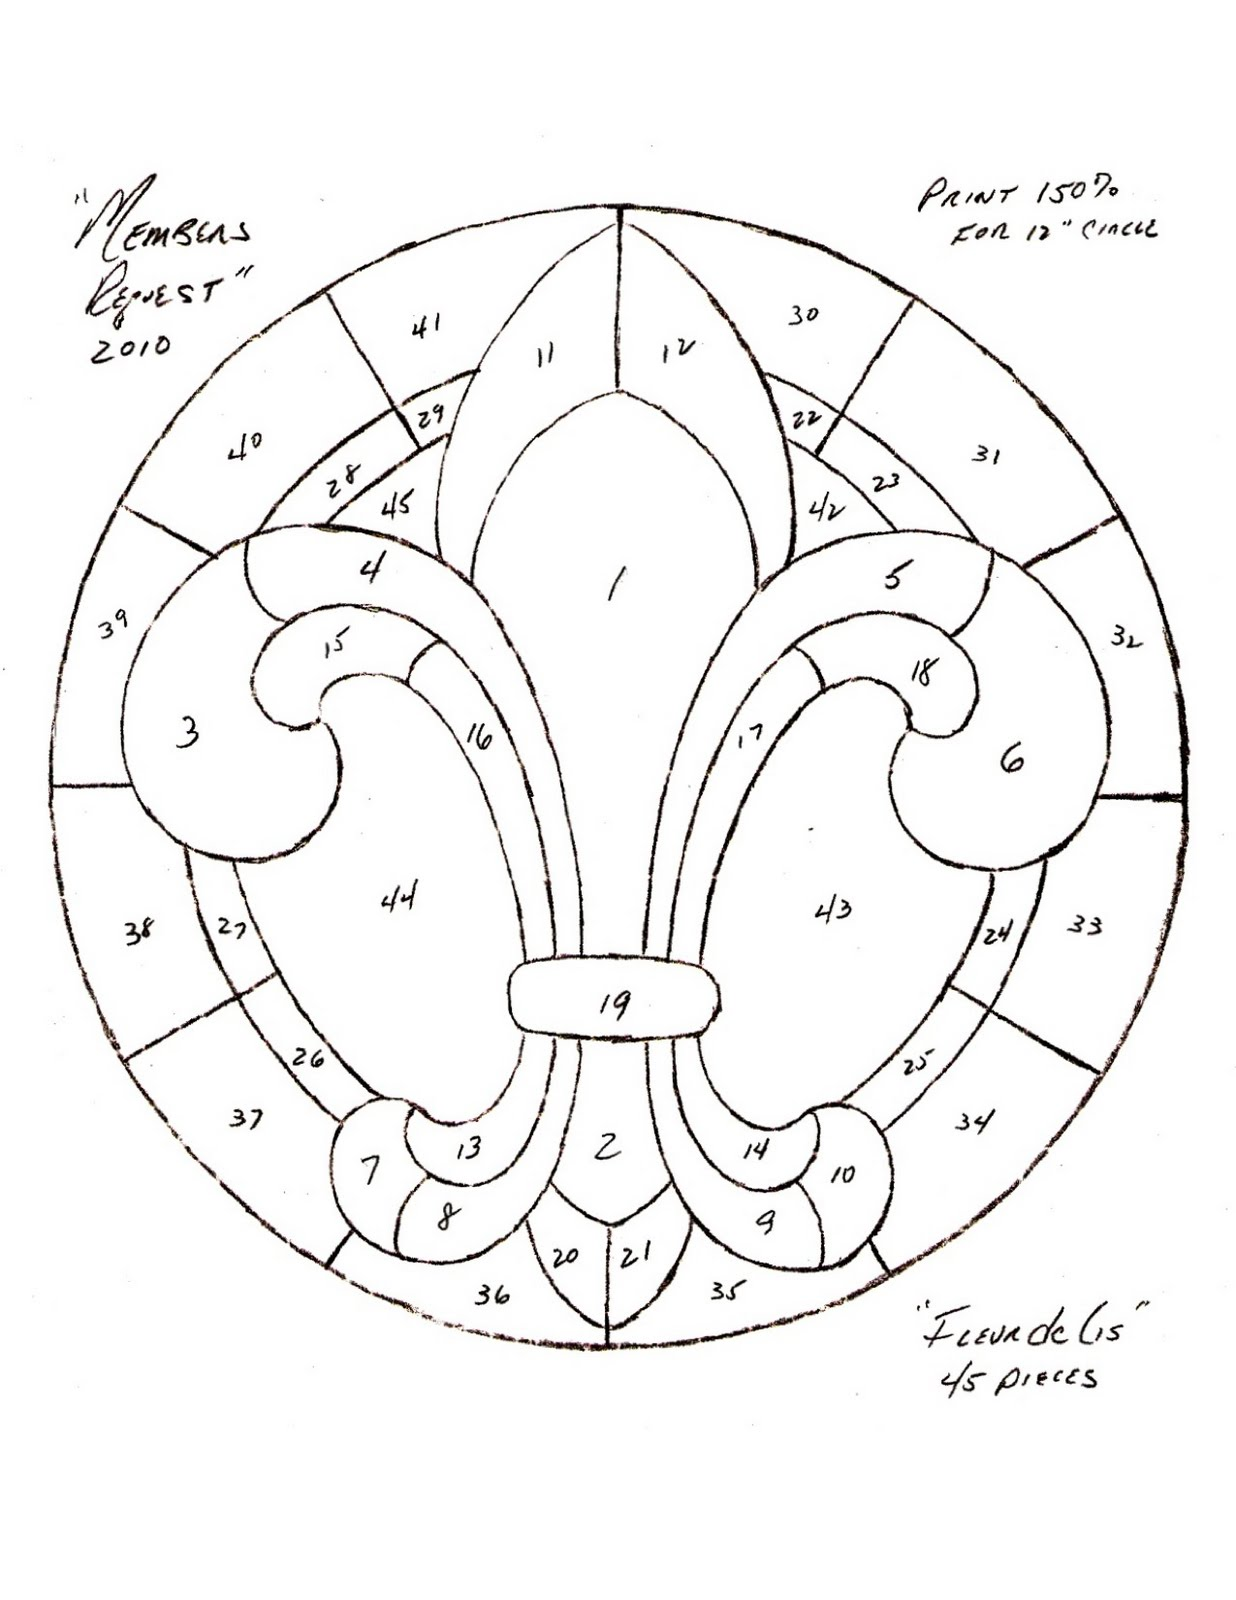 FREE CELTIC STAINED GLASS PATTERNS